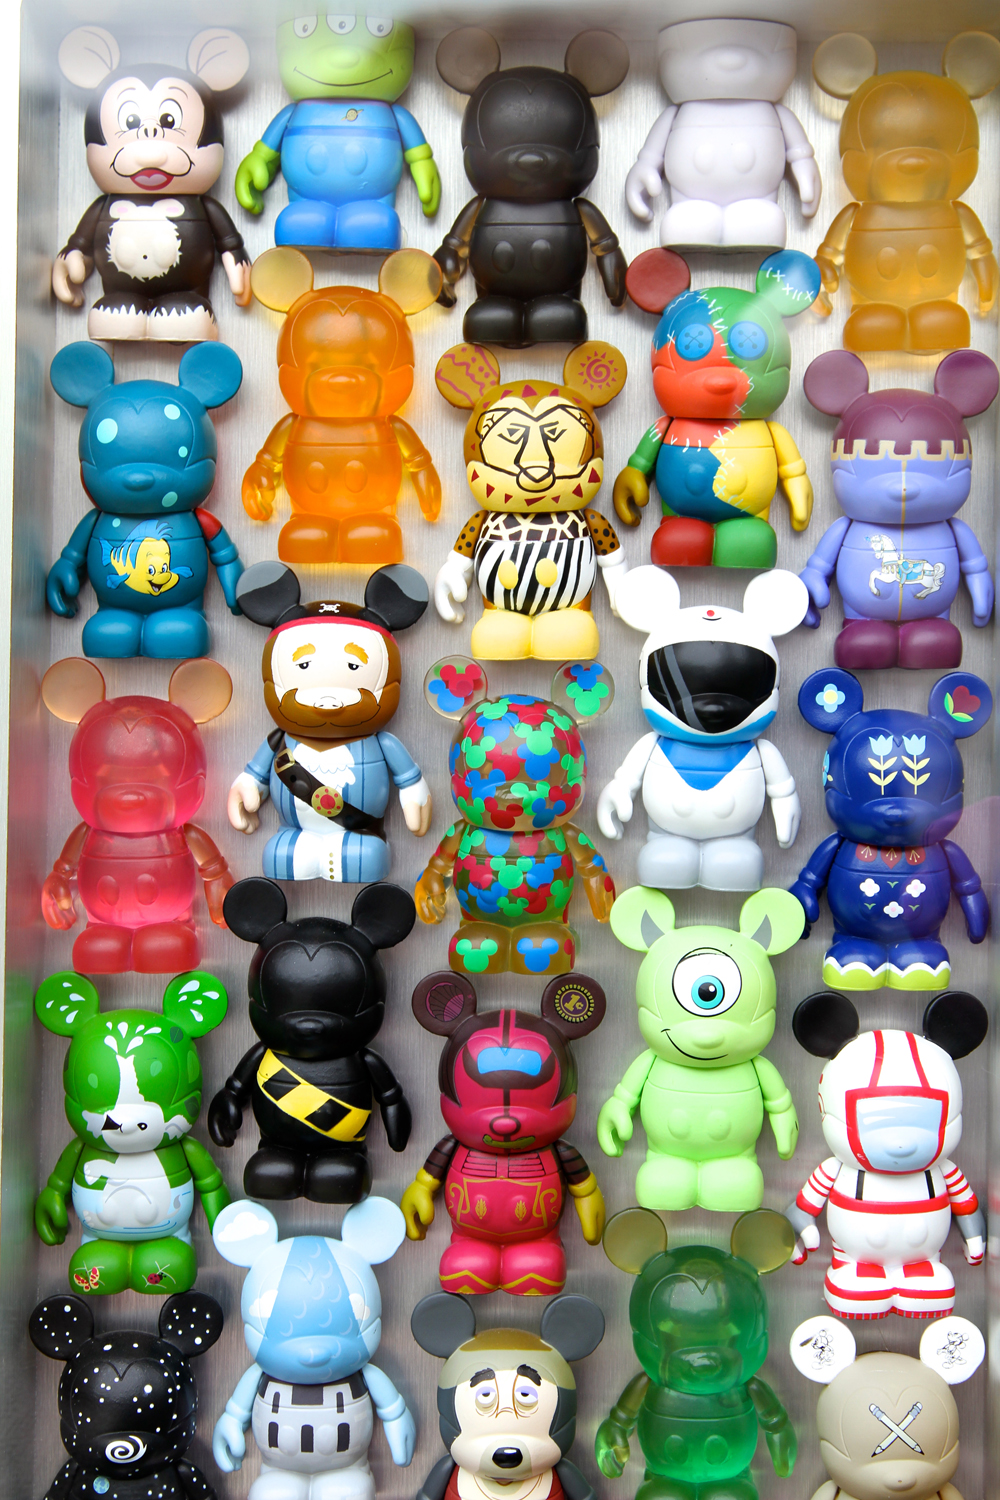 March arts and crafts - Everyday Art Vinylmation Obsession